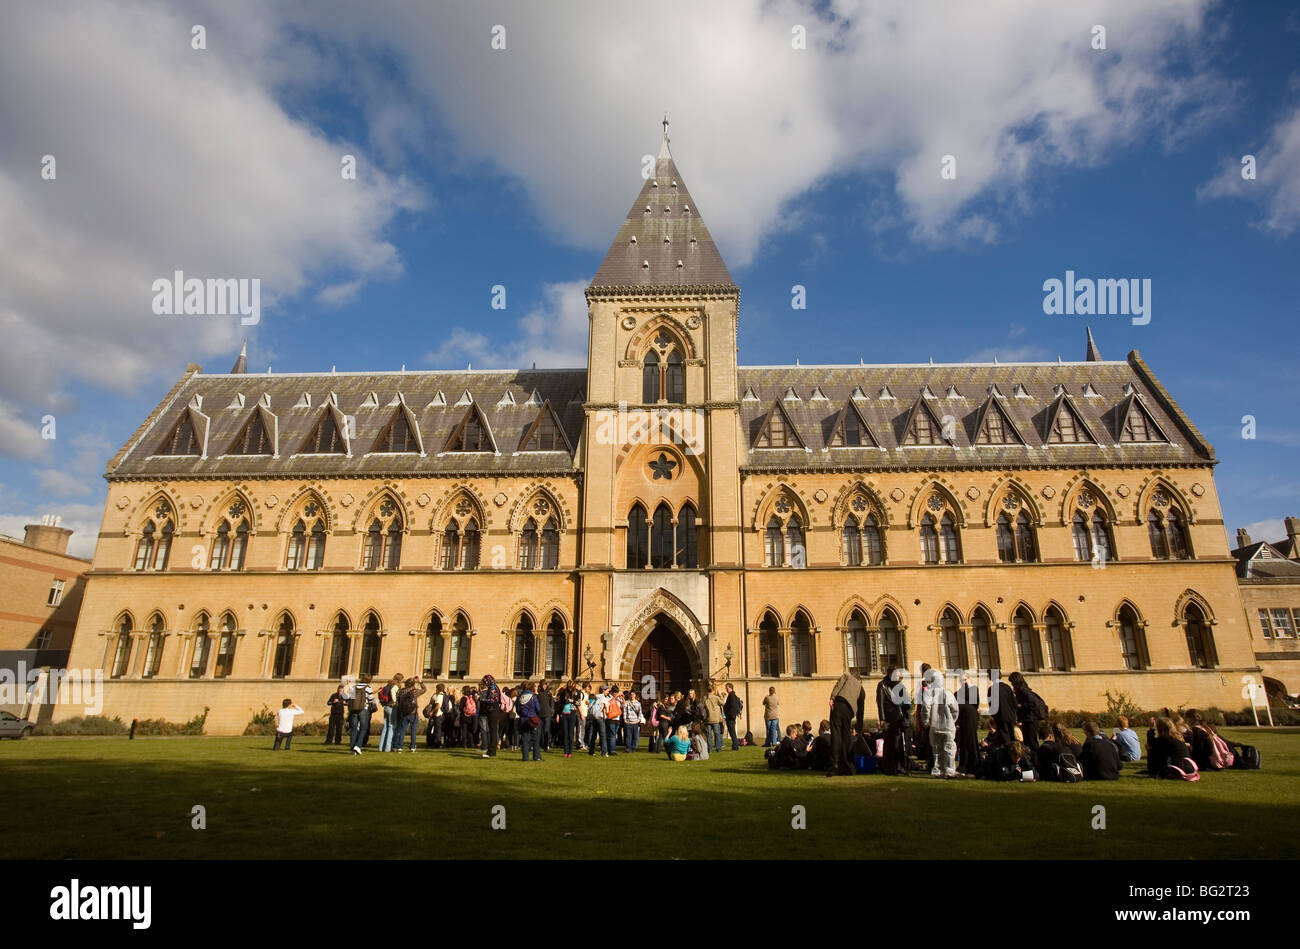 Pitt Rivers Museum, Oxford, England, UK - Stock Image